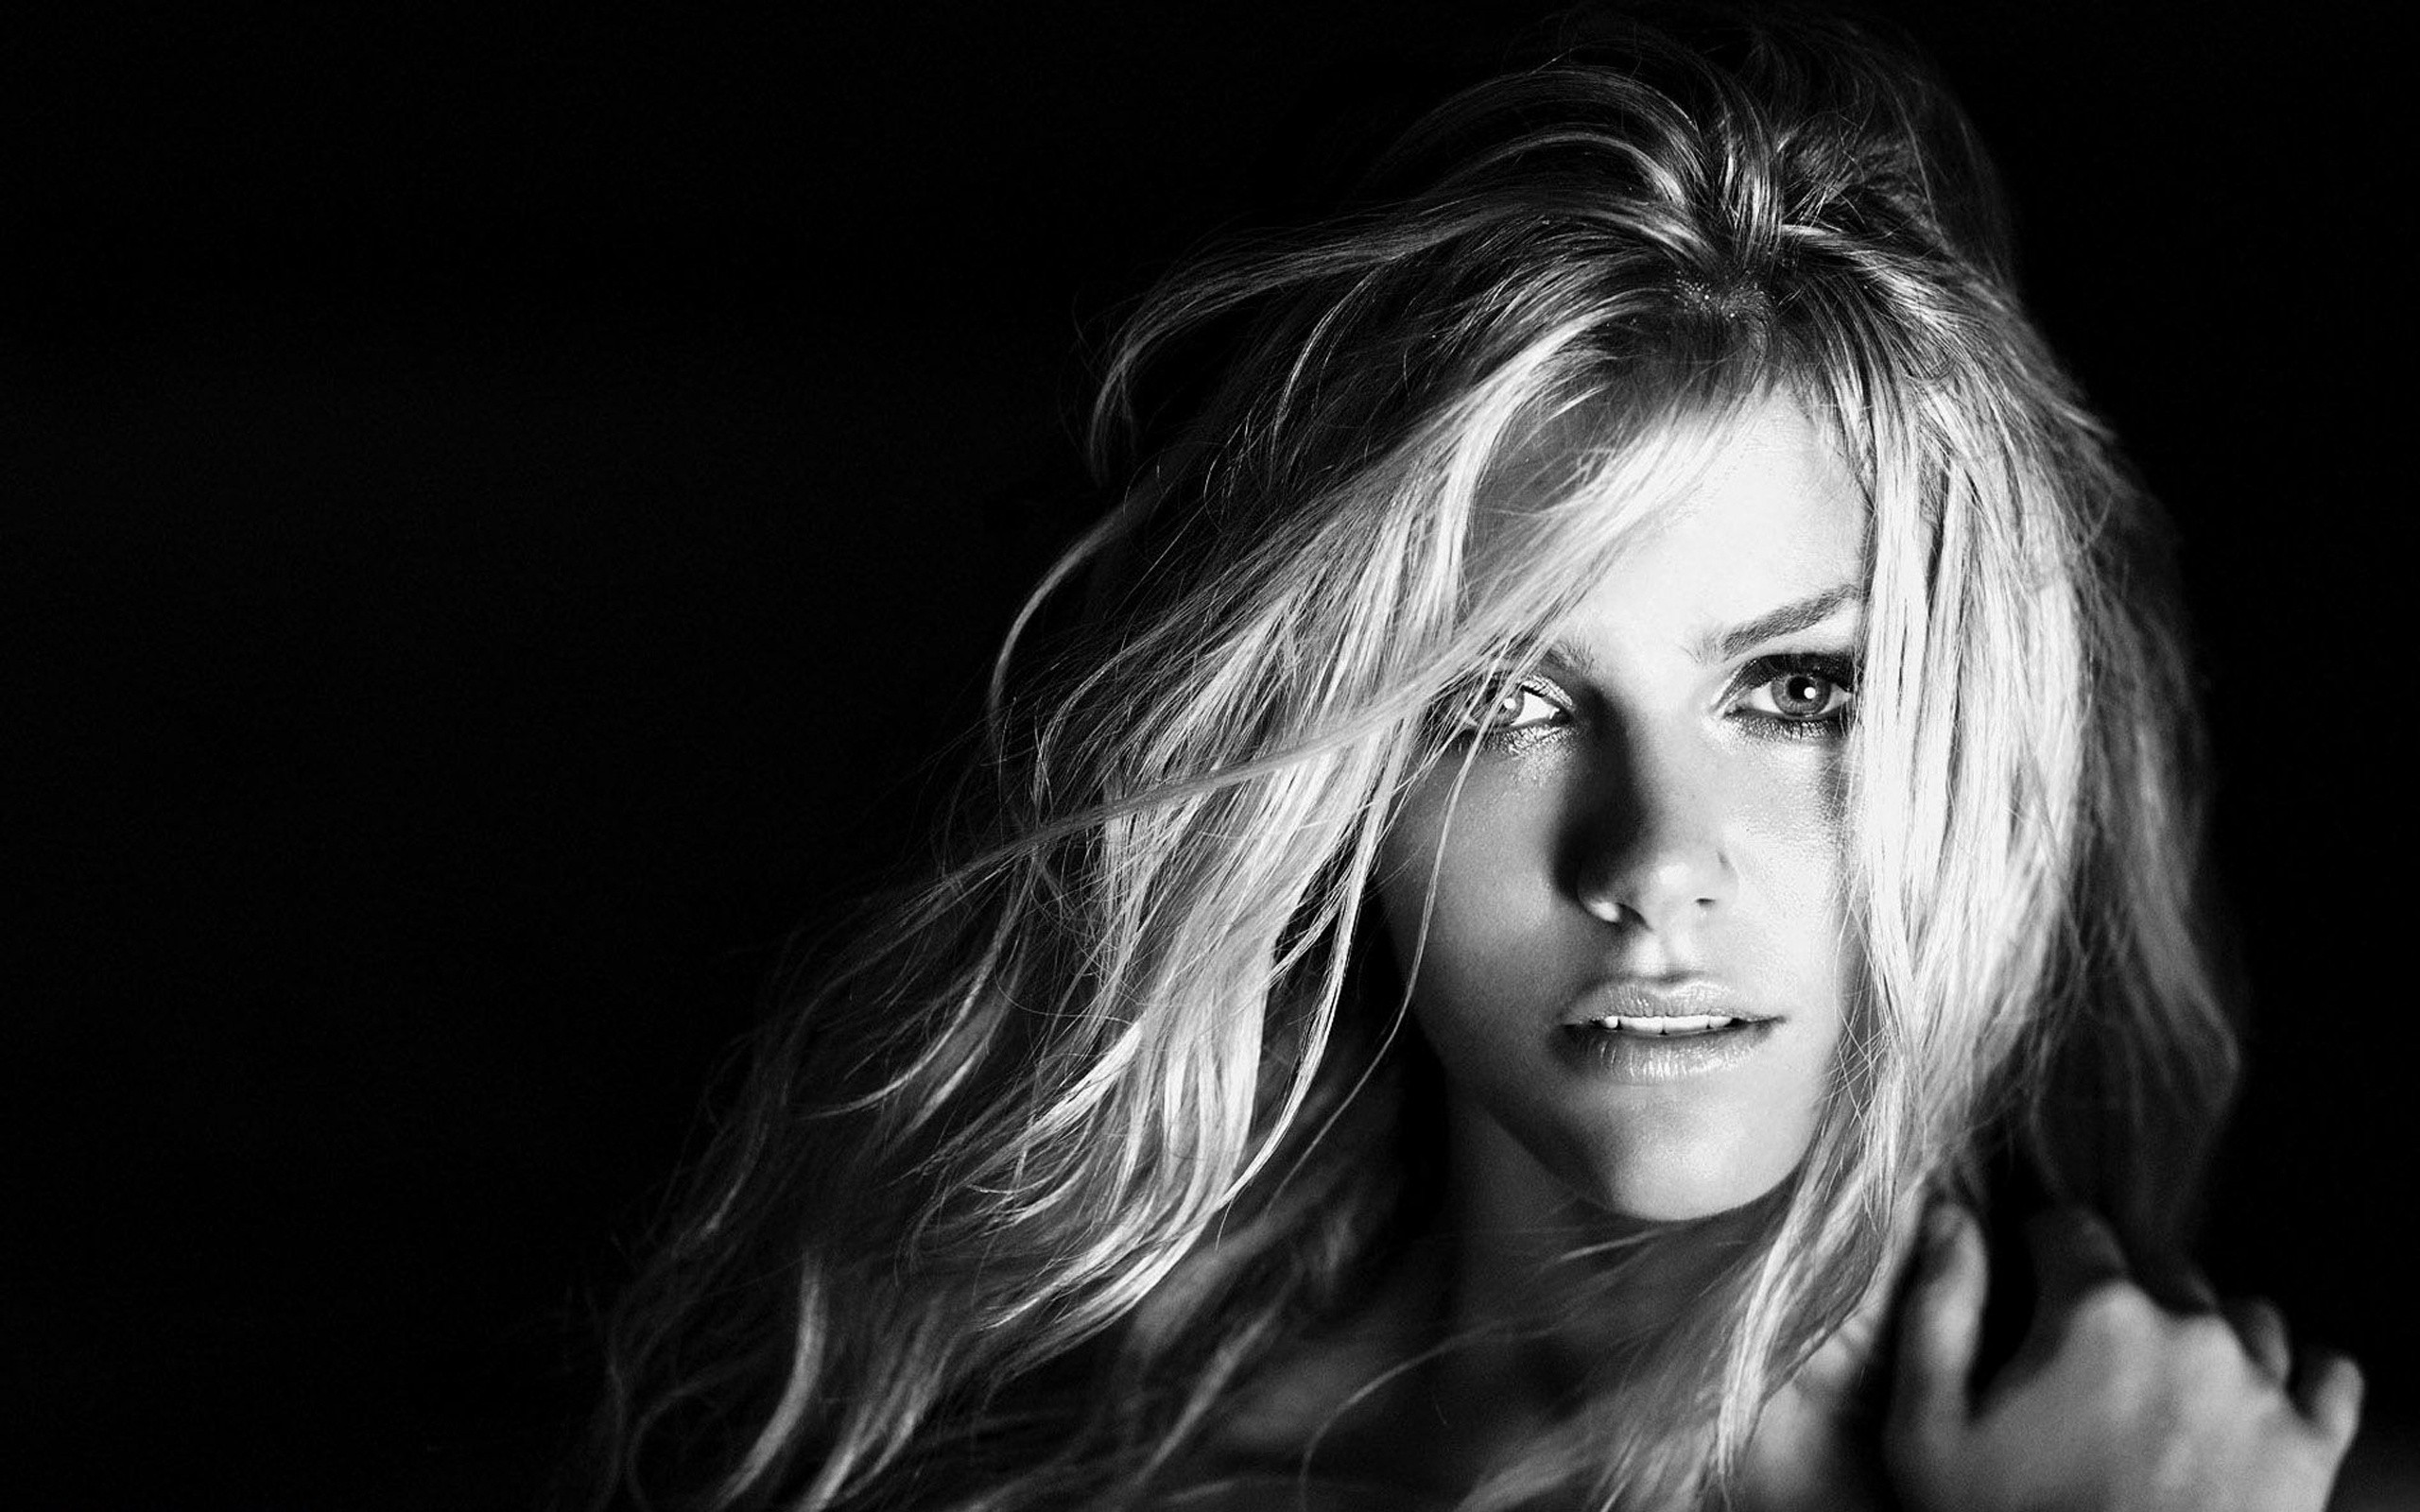 2560x1600 sexy-girl-wallpaper-12;  blondes_women_models_brooklyn_decker_monochrome_black_background__wallpaper_Wallpaper__www_wallpaperswa_com